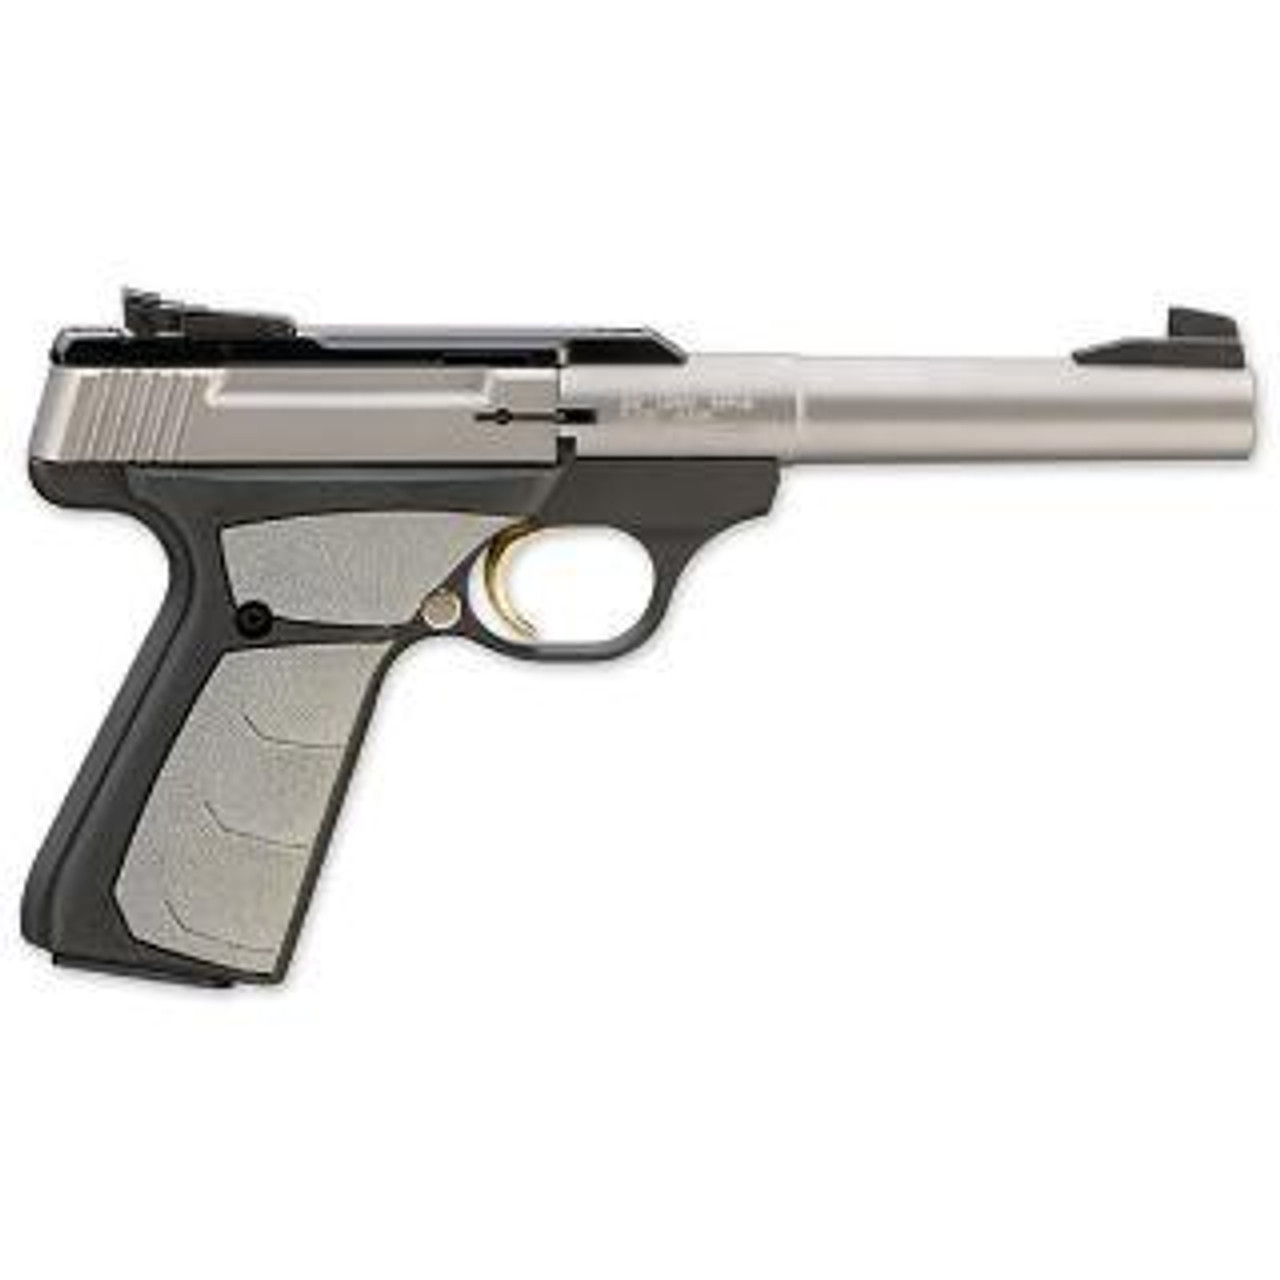 Browning Buckmark Camper UFX CALIFORNIA LEGAL - .22LR